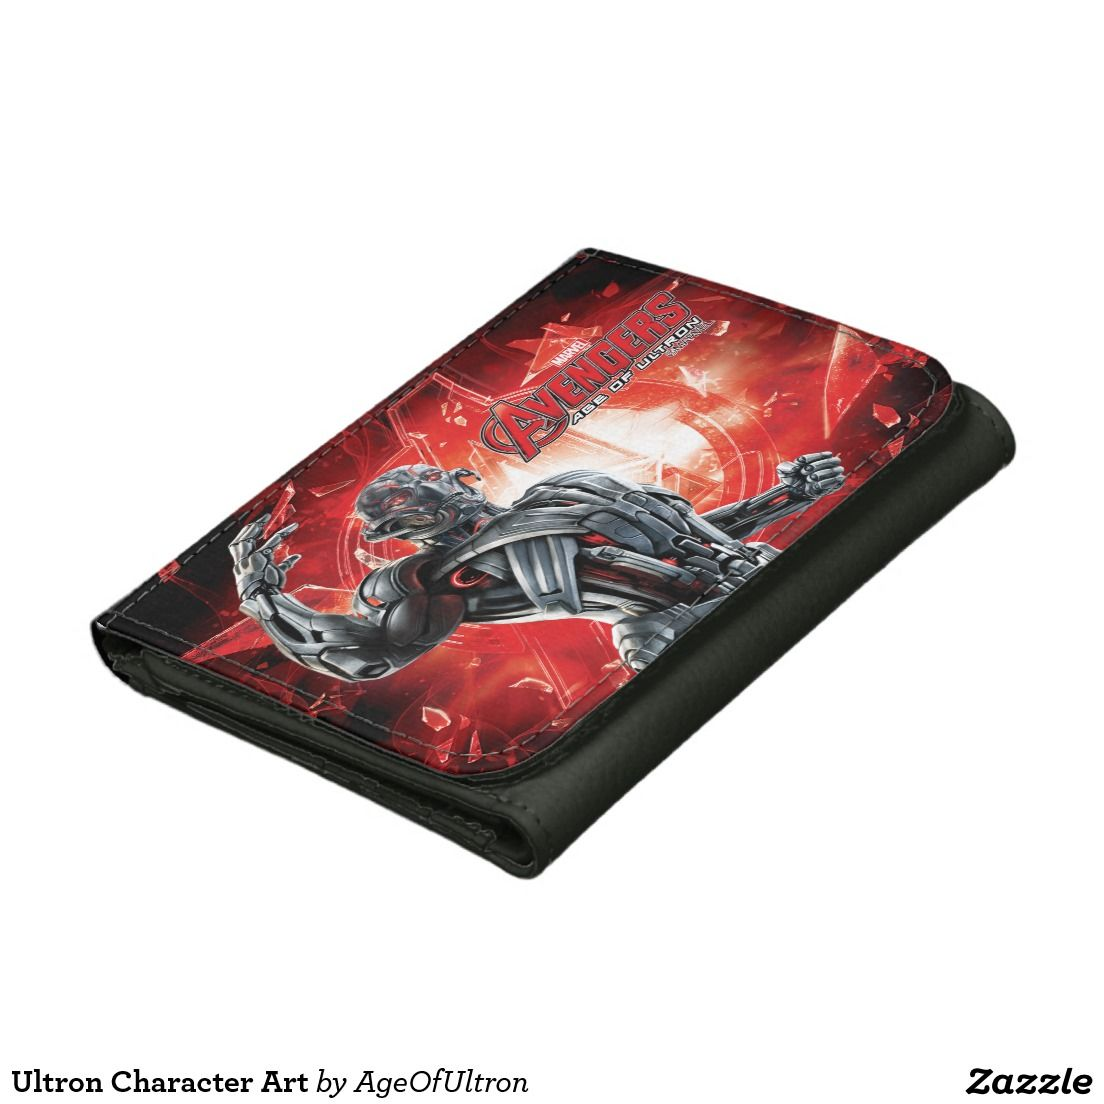 Ultron Character Art Leather Trifold Wallet